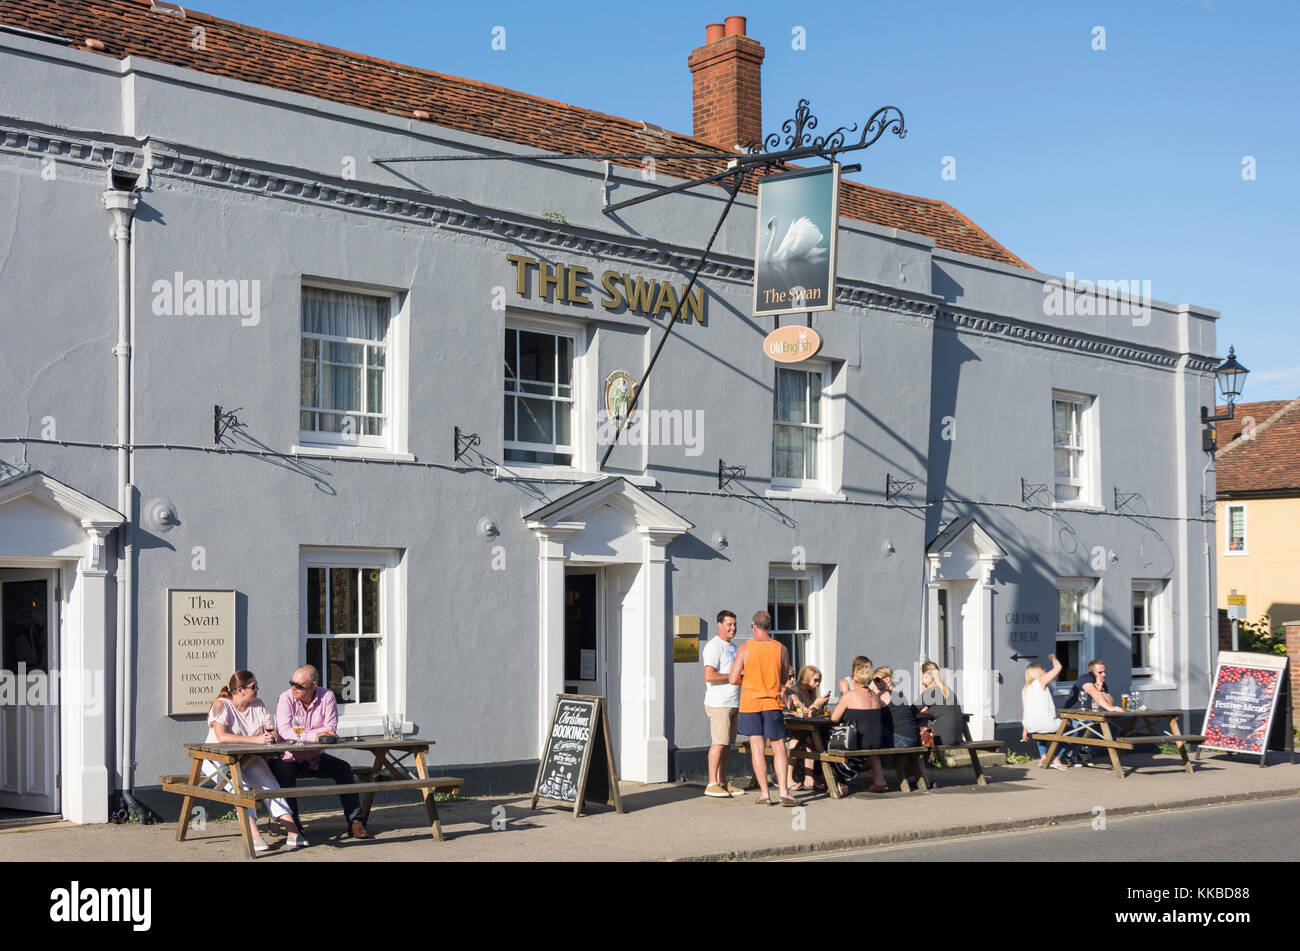 The Swan Hotel, Watling Street, Thaxted, Essex, England, United Kingdom - Stock Image